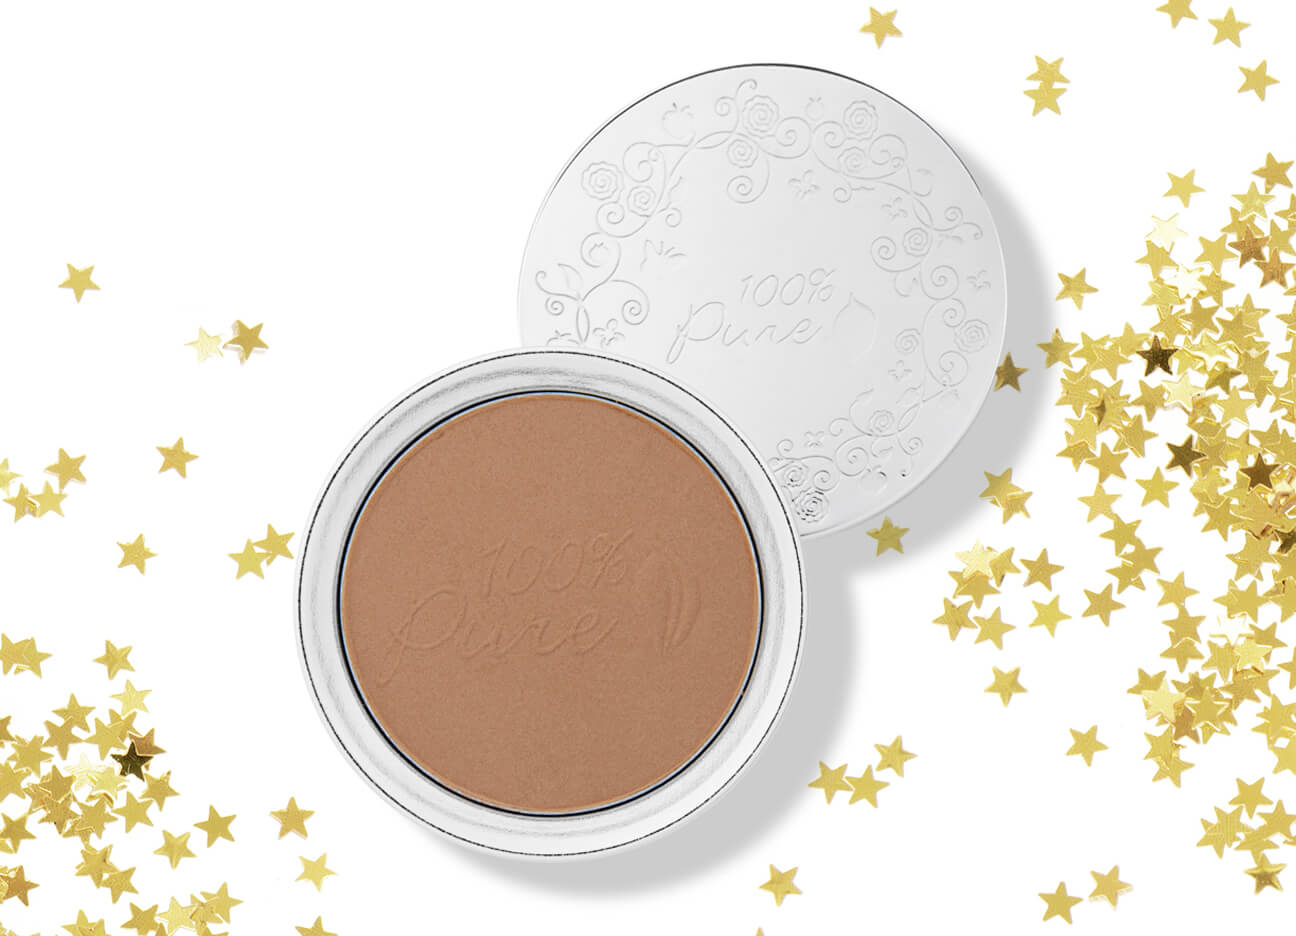 Fruit Pigmented Healthy Foundation Powder